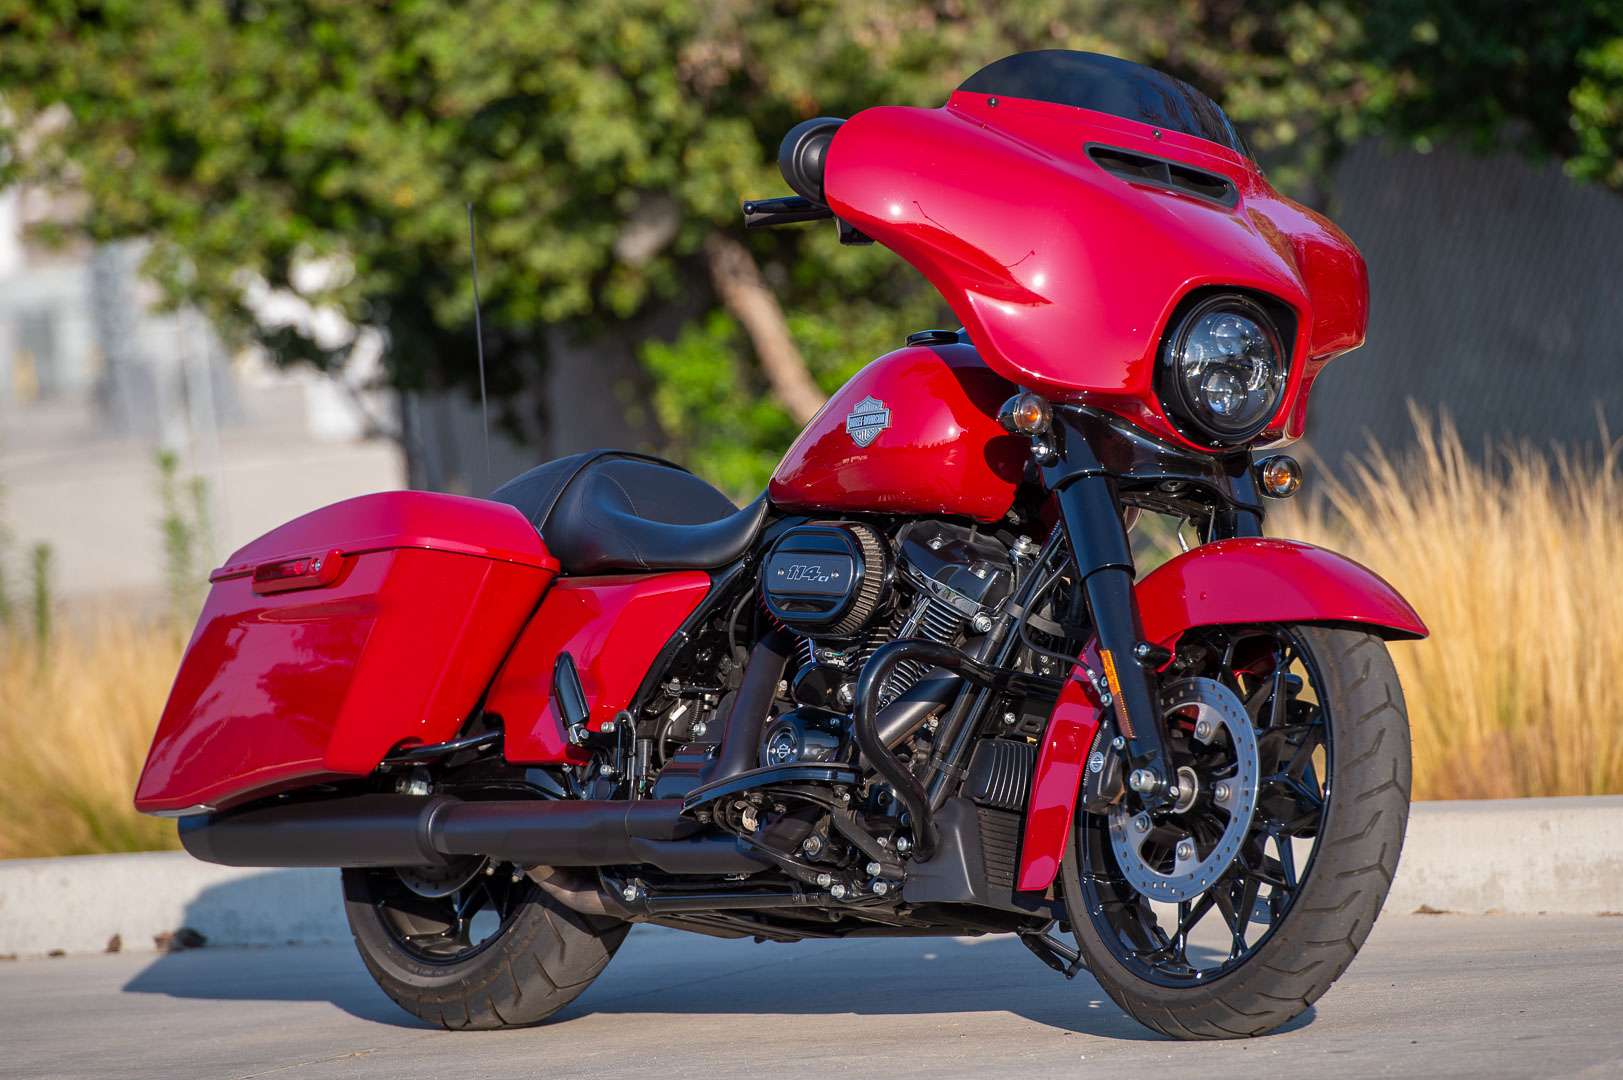 2021 Harley-Davidson Street Glide Special Review: Price